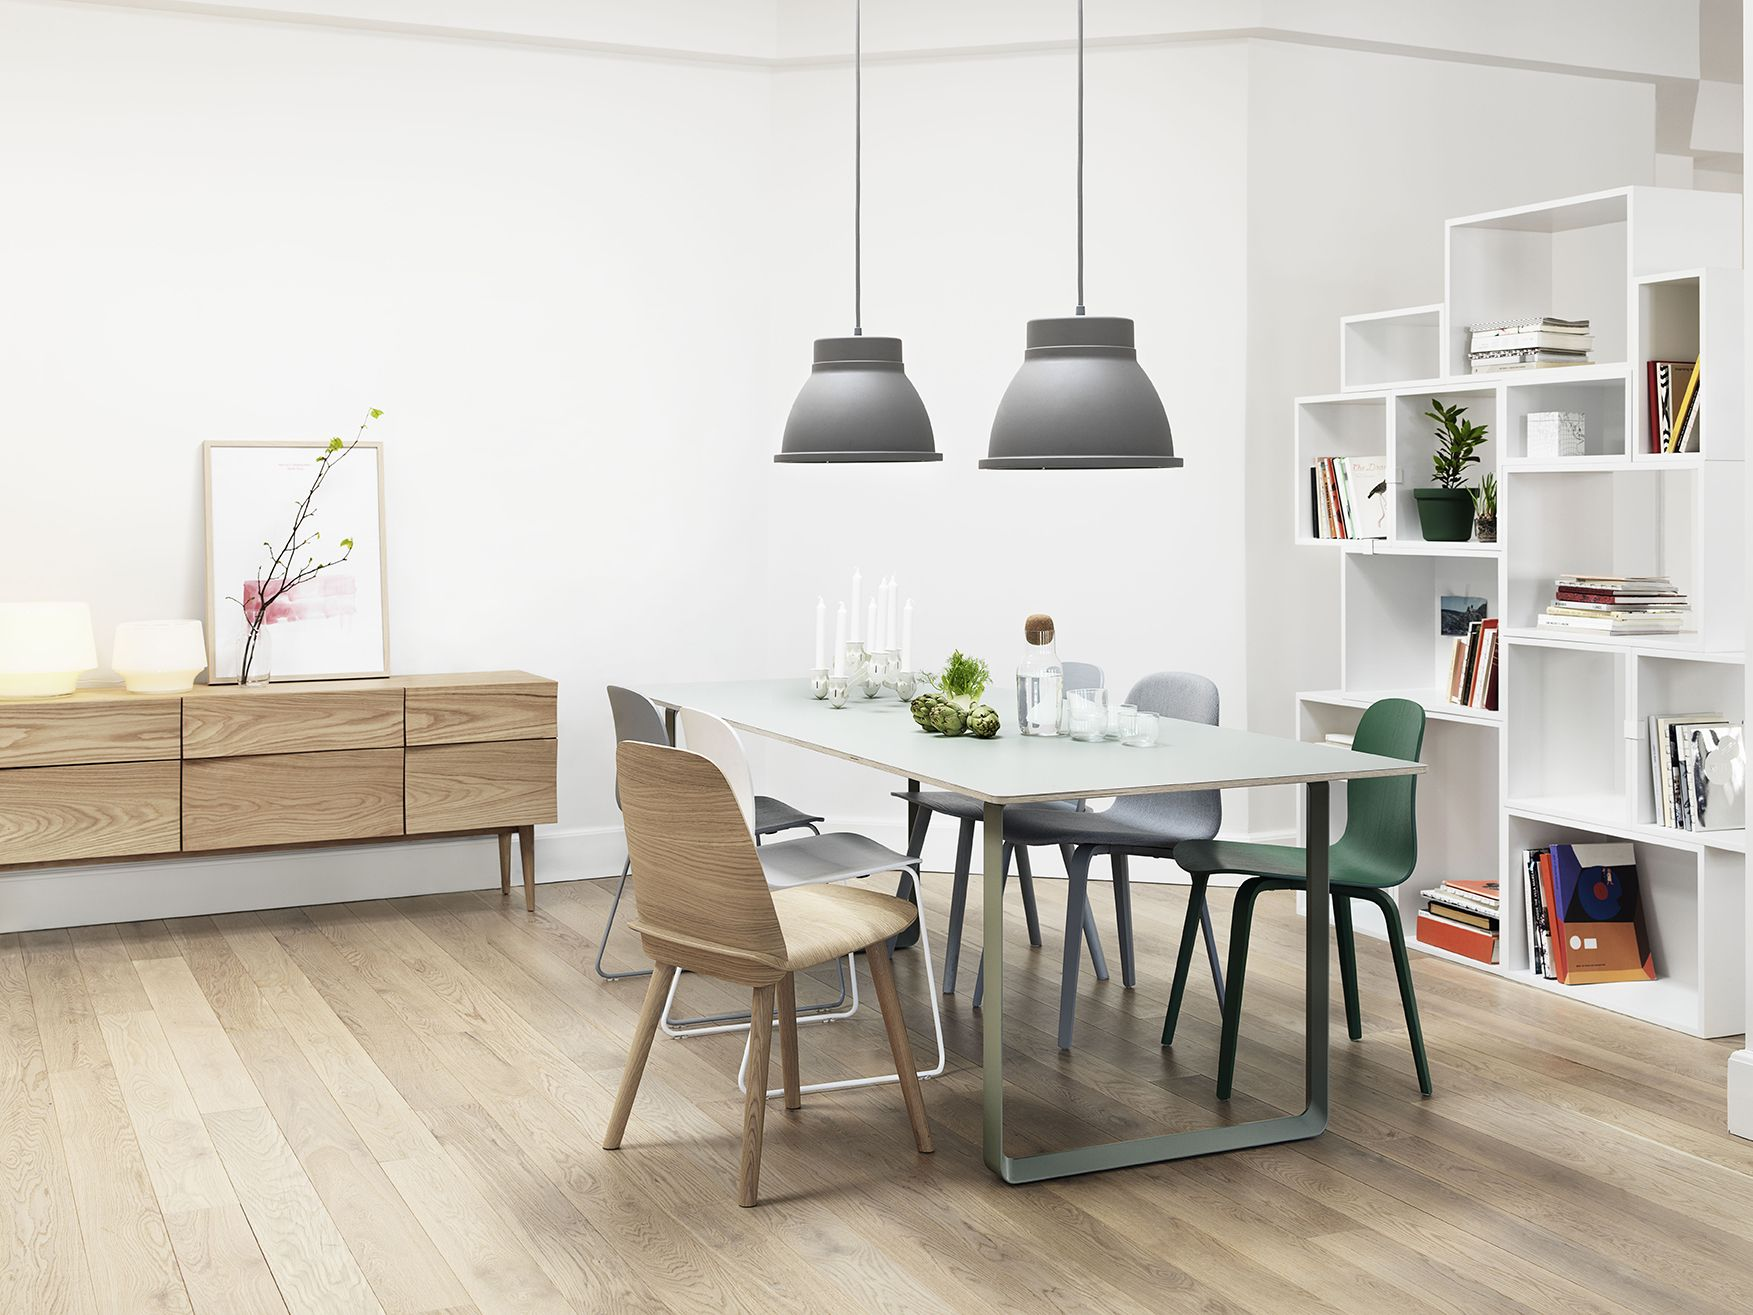 From The Word Muutos Meaning New Perspective In The Finnish Language Muuto Was Born Dining Room Design Scandinavian Interior Design Scandinavian Dining Room